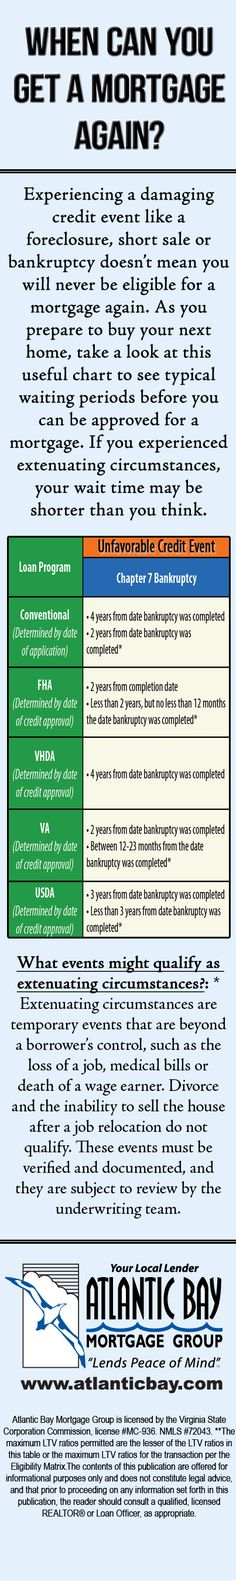 When You Can Purchase A Home After Filing Chapter 7 Bankruptcy?  #realestate #afterbankruptcy